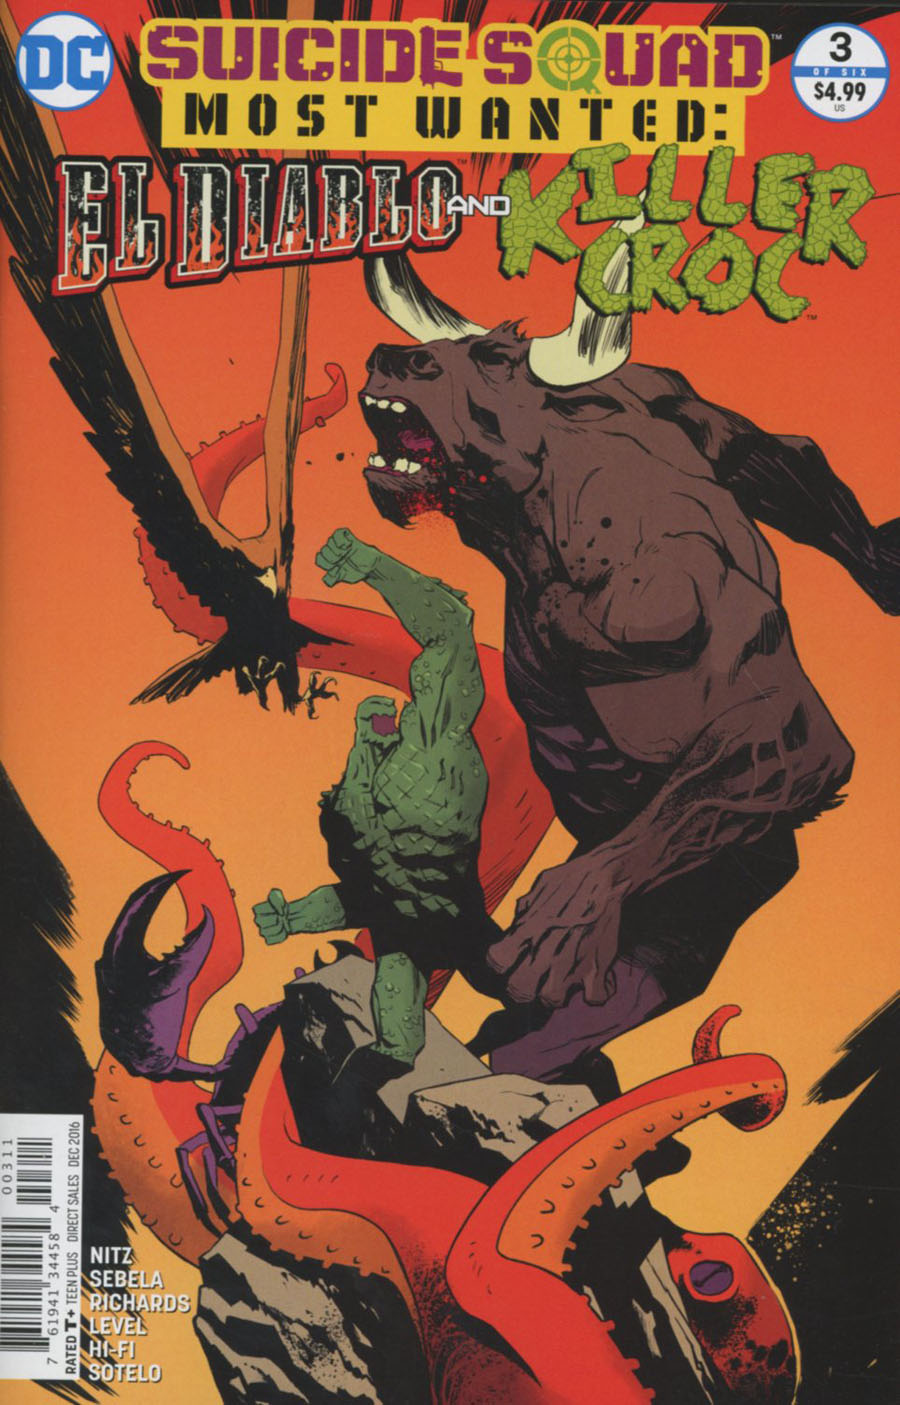 Suicide Squad Most Wanted El Diablo & Killer Croc #3